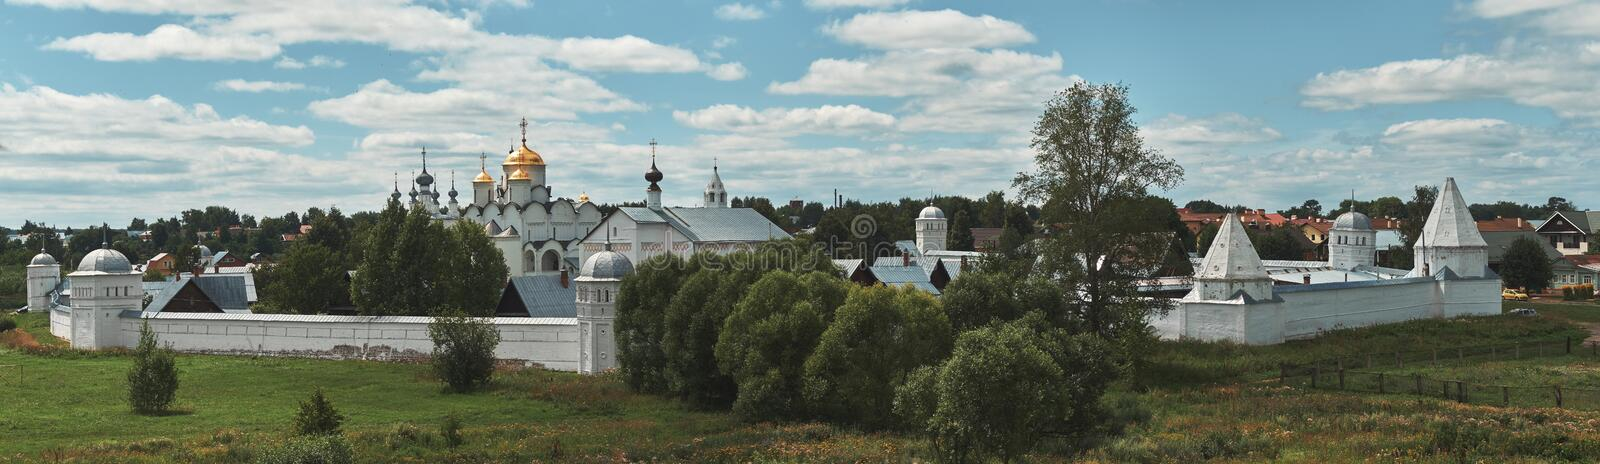 Suzdal, RUSSIA - July 29, 2018: Pokrovsky Monastery royalty free stock images